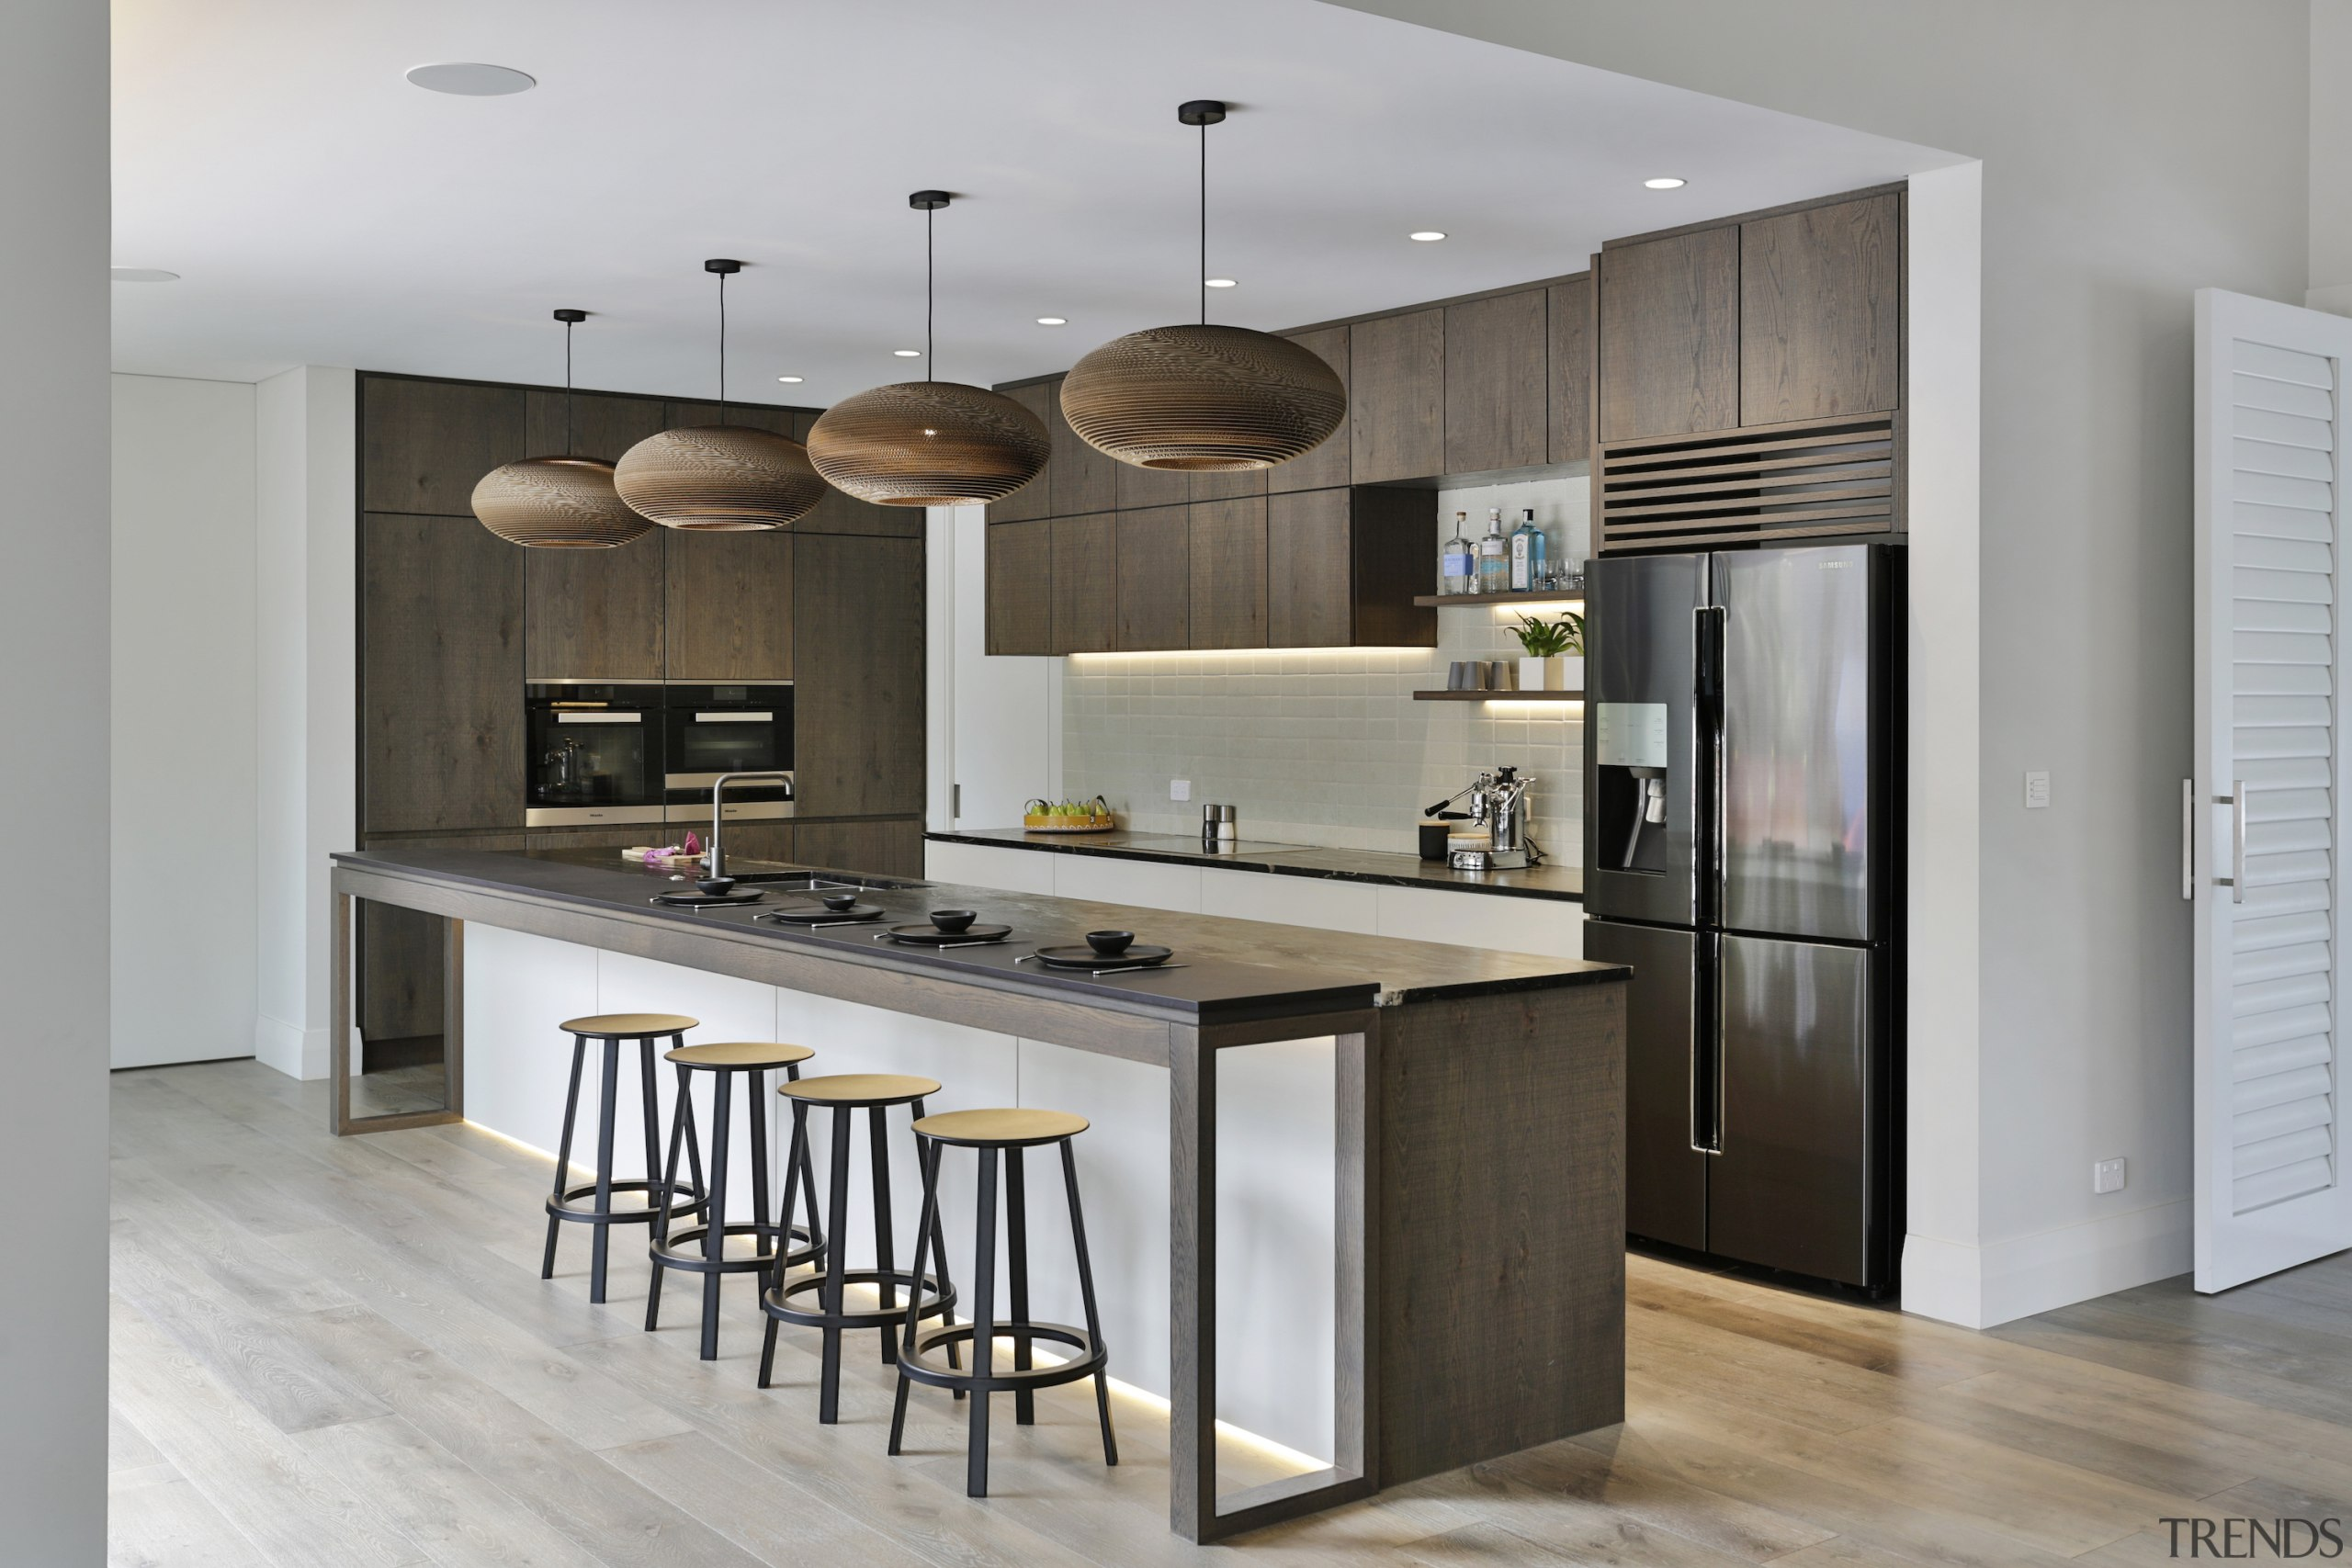 The designer specified textured oak cabinetry finishes, with